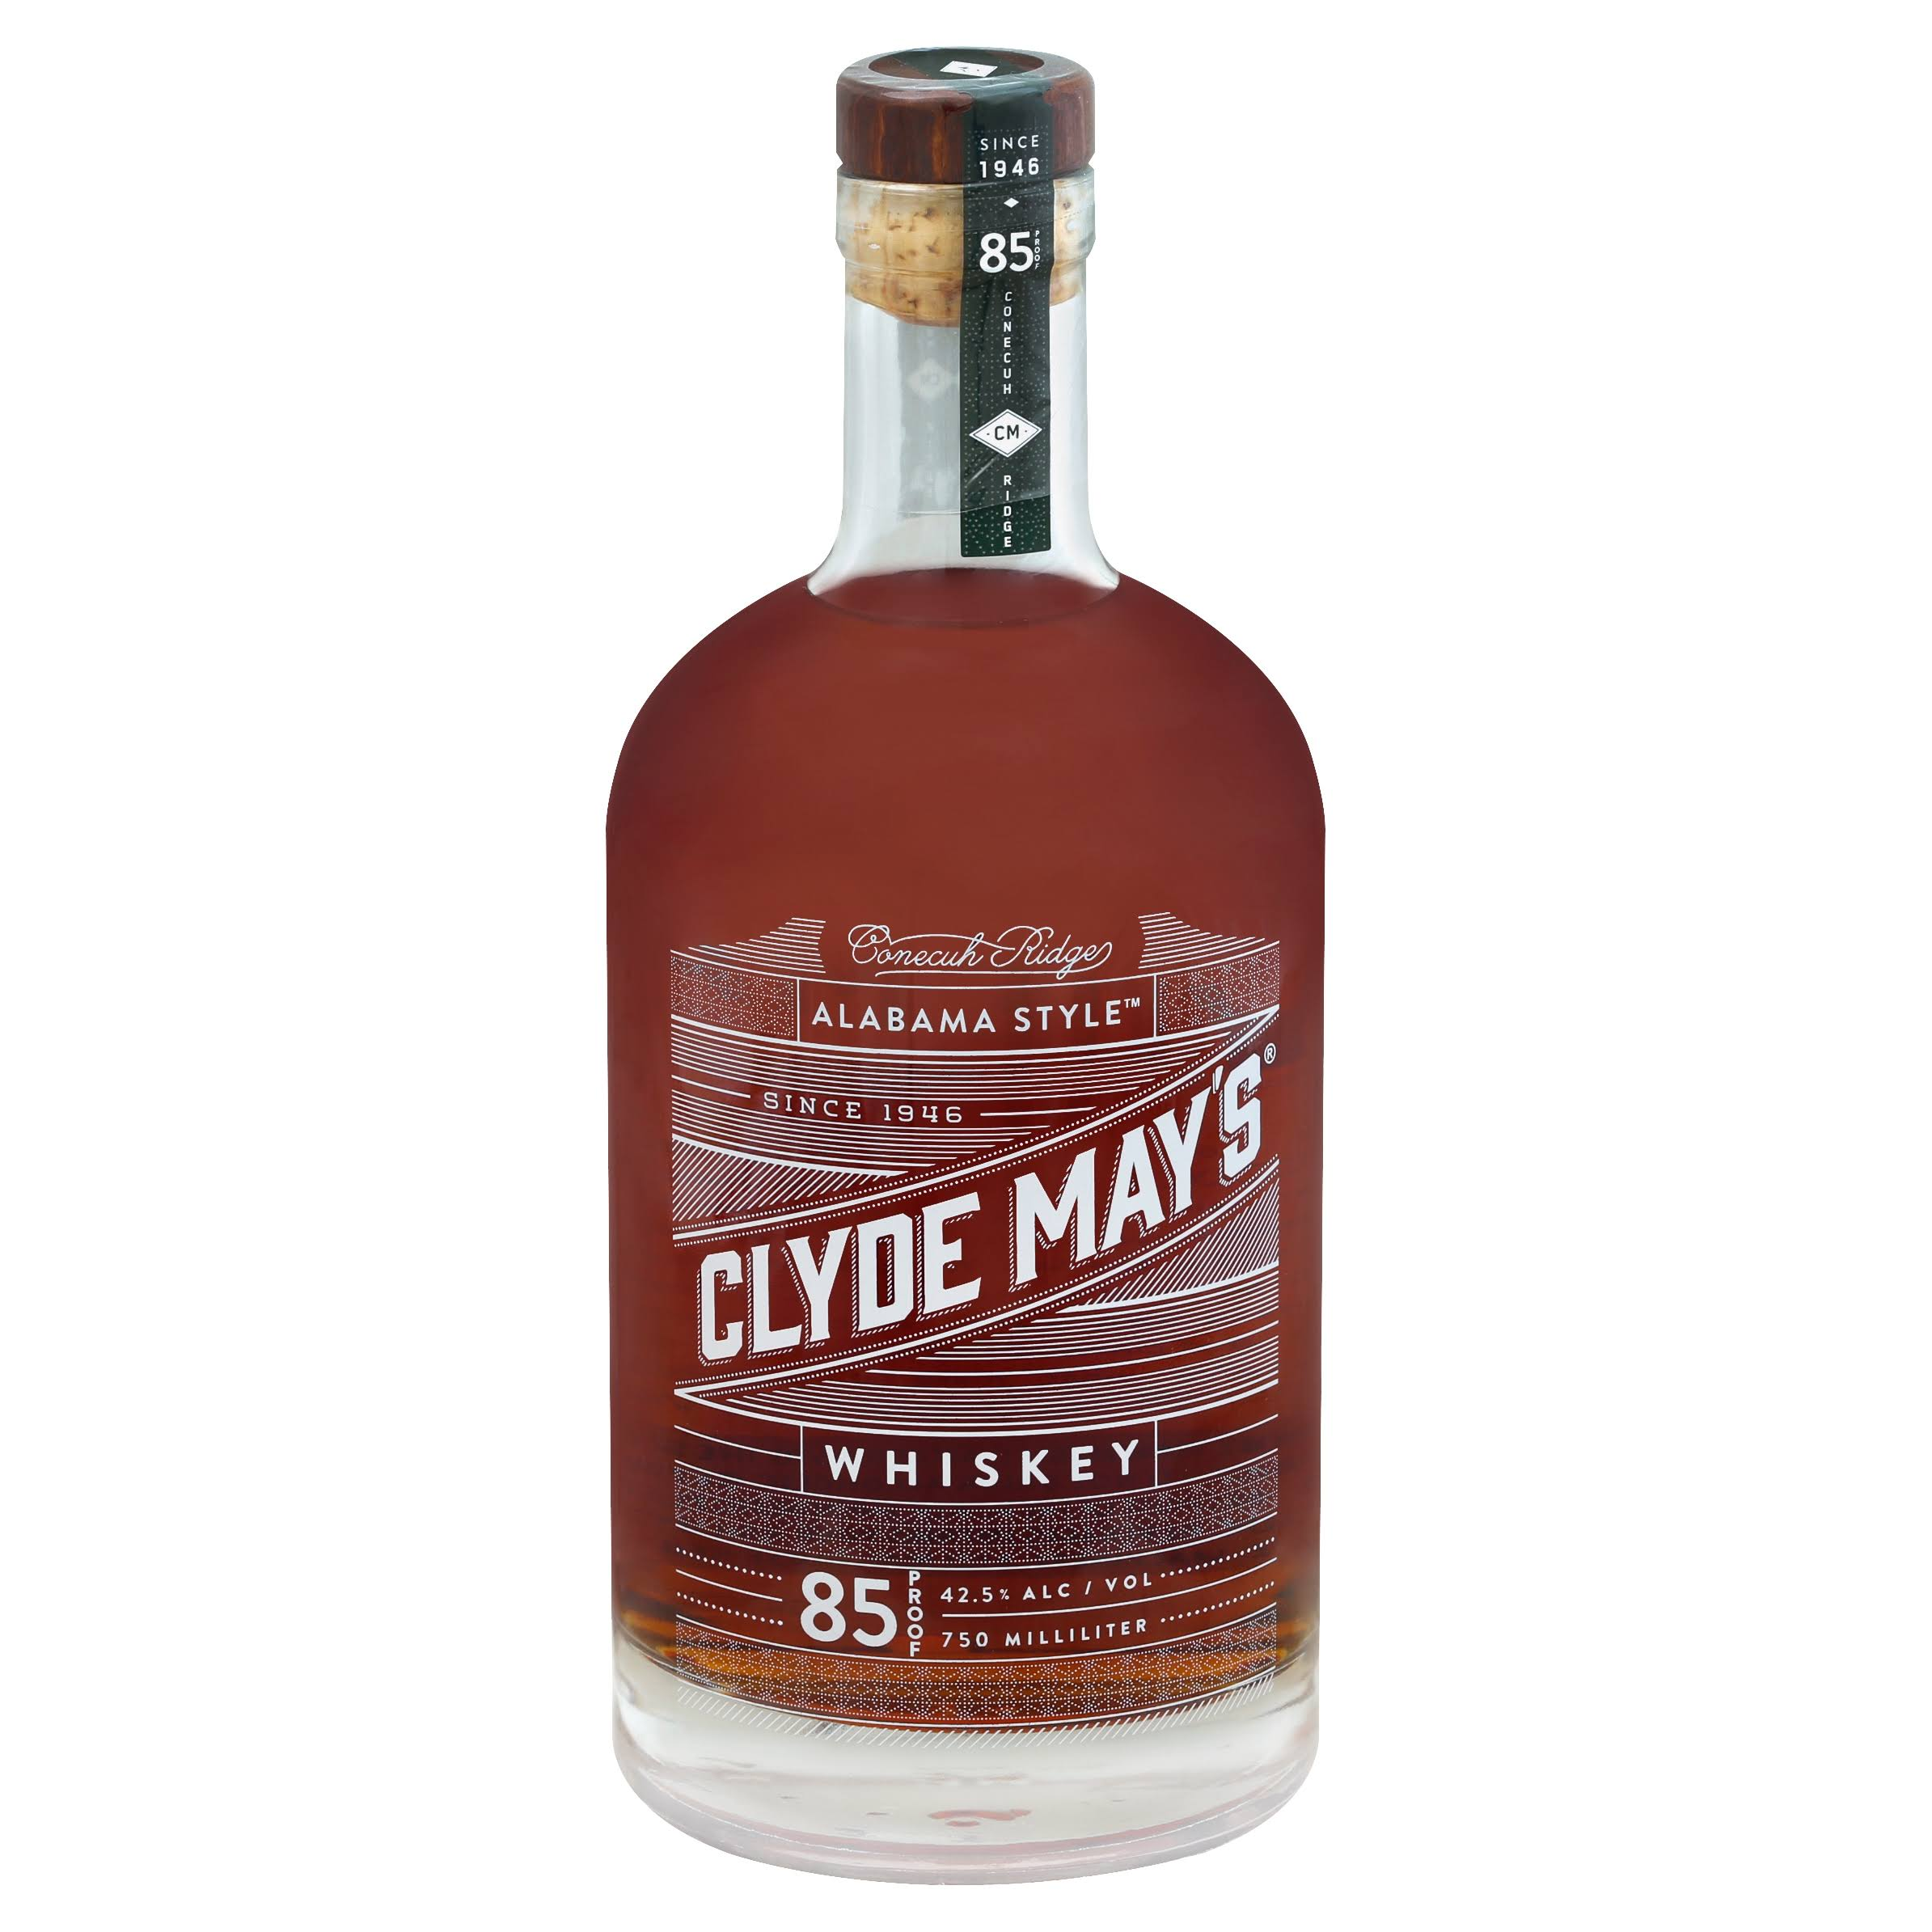 Clyde May's Conecuh Ridge Whiskey - 750 ml bottle